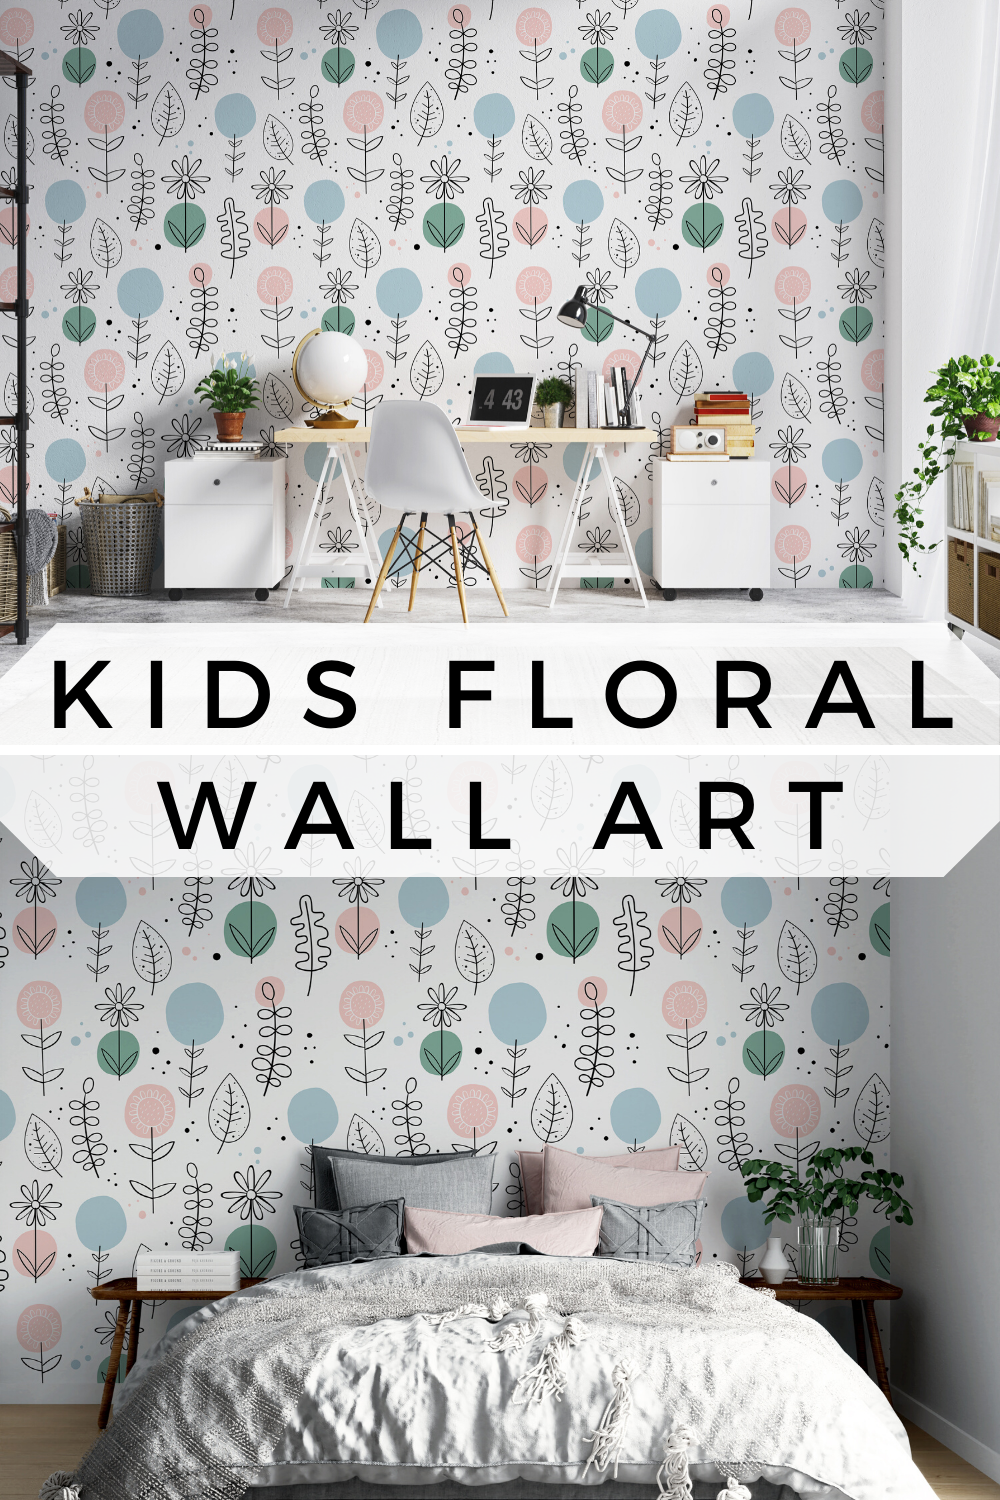 Floral Wall Art Removable Kids Nursery Wallpaper Wall Decor Girls Boys Reusable Or Traditional Peel And Stick Room Decor Eco Friendly Wallpaper Walls Decor Nursery Wallpaper Floral Wall Art